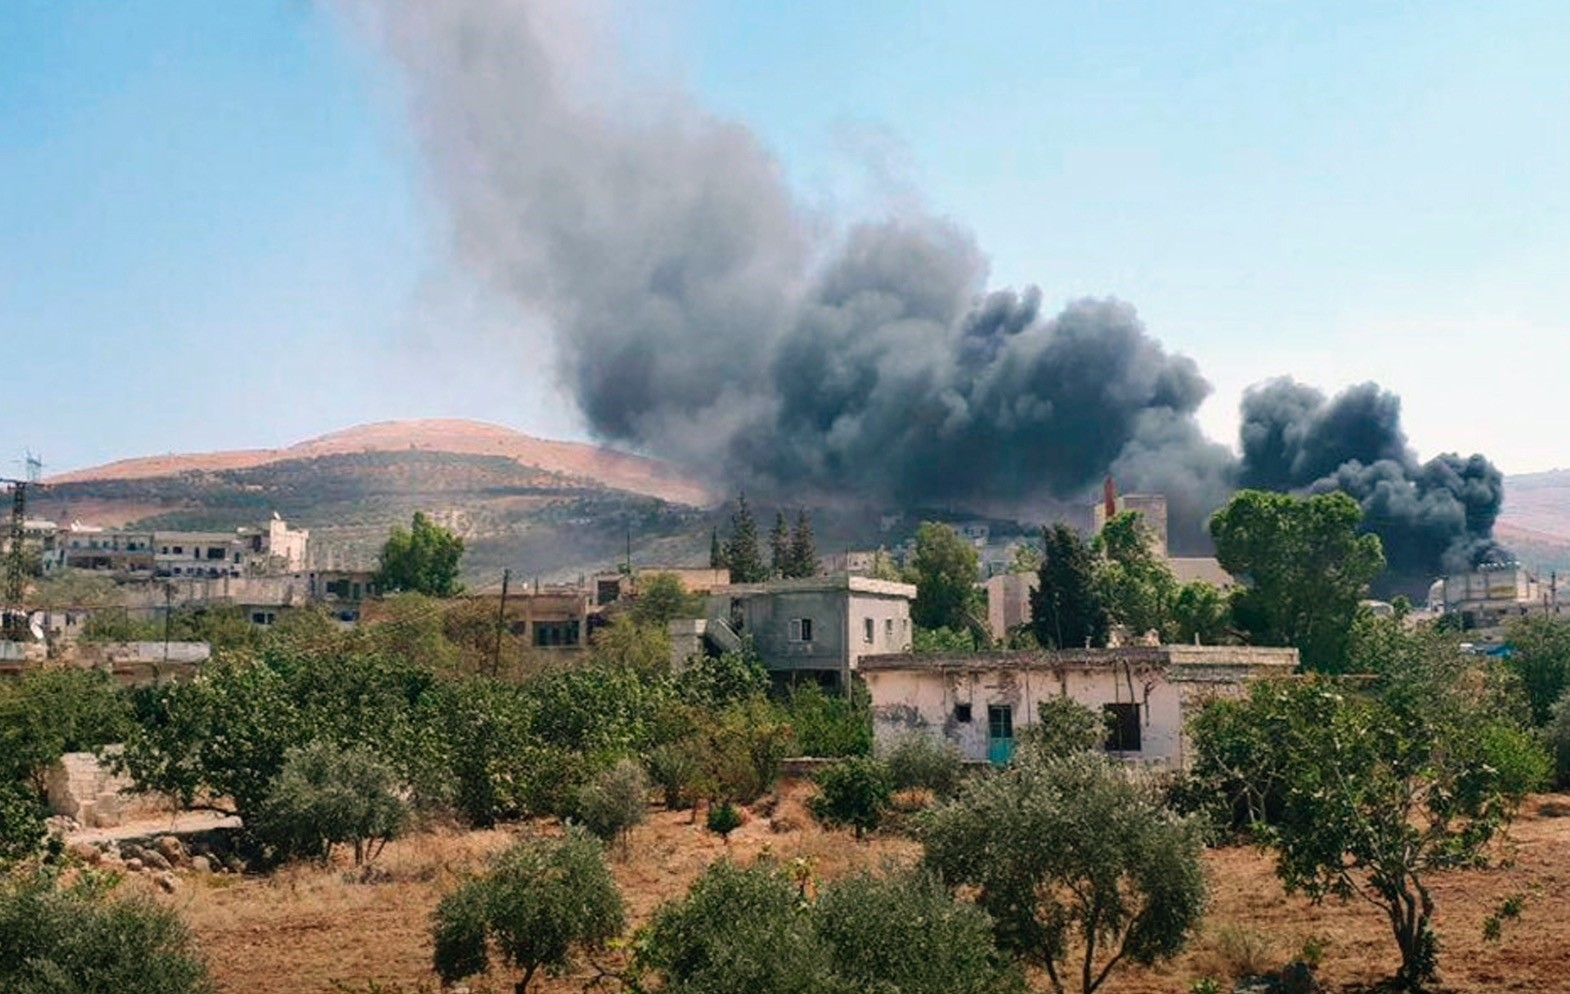 Smoke rises over buildings hit by airstrikes in Mahambal village in the northern province of Idlib, Syria.